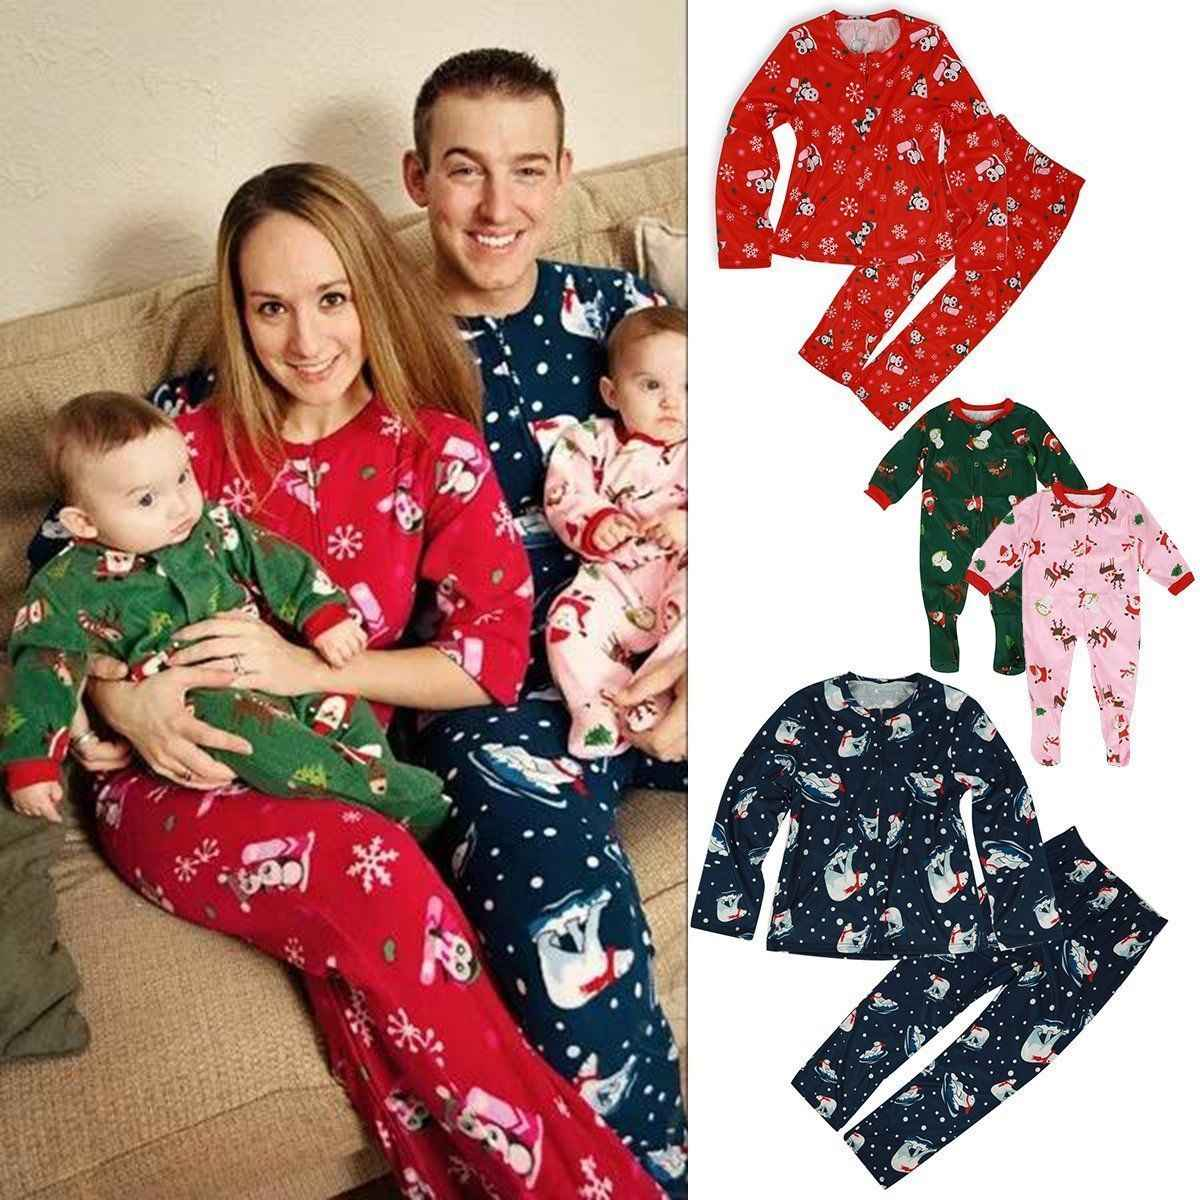 Family Matching Christmas Pajamas Set Womens Mens Baby Kids Deer printing cotton casual 2pcs Sleepwear Nightwear clothes sets